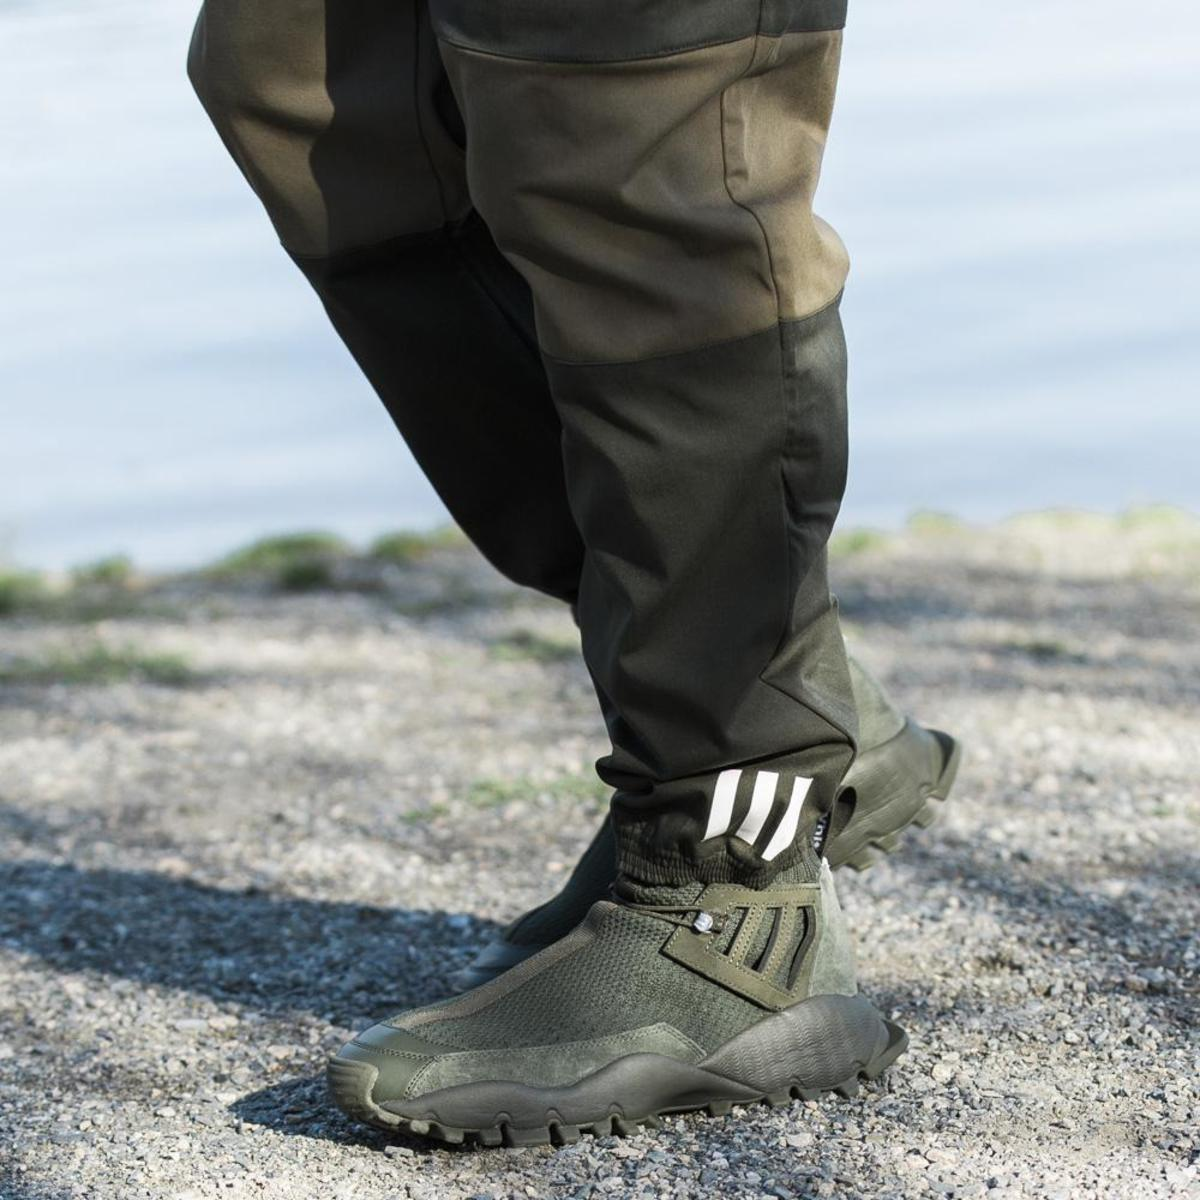 7b95d28da1b0 ADIDAS ORIGINALS BY WHITE MOUNTAINEERING SEEULATER ALLEDO - NIGHT ...